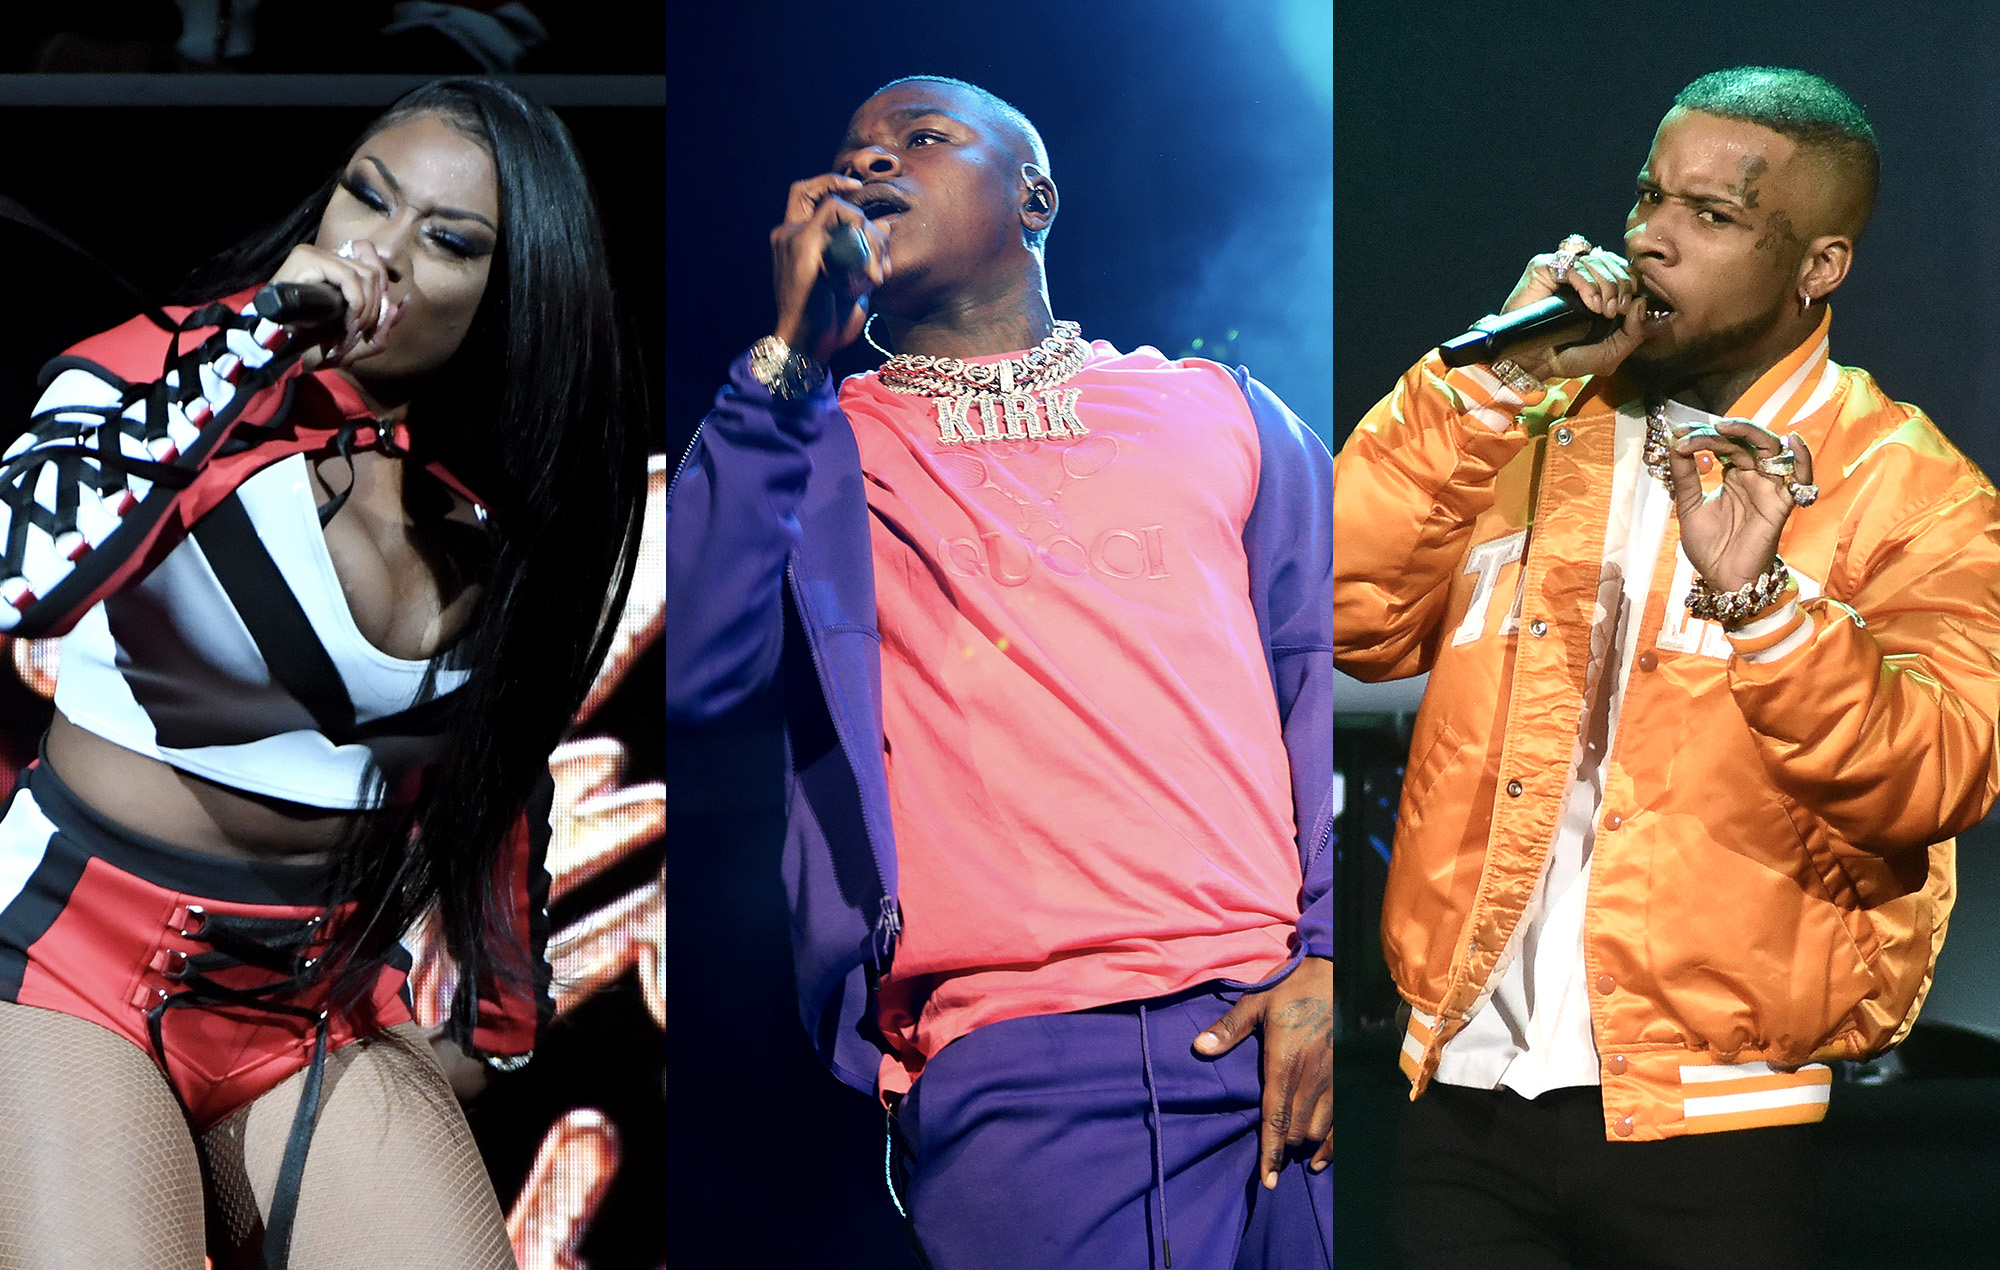 DaBaby faces criticism for collaborating with Tory Lanez on new song, Megan Thee Stallion responds